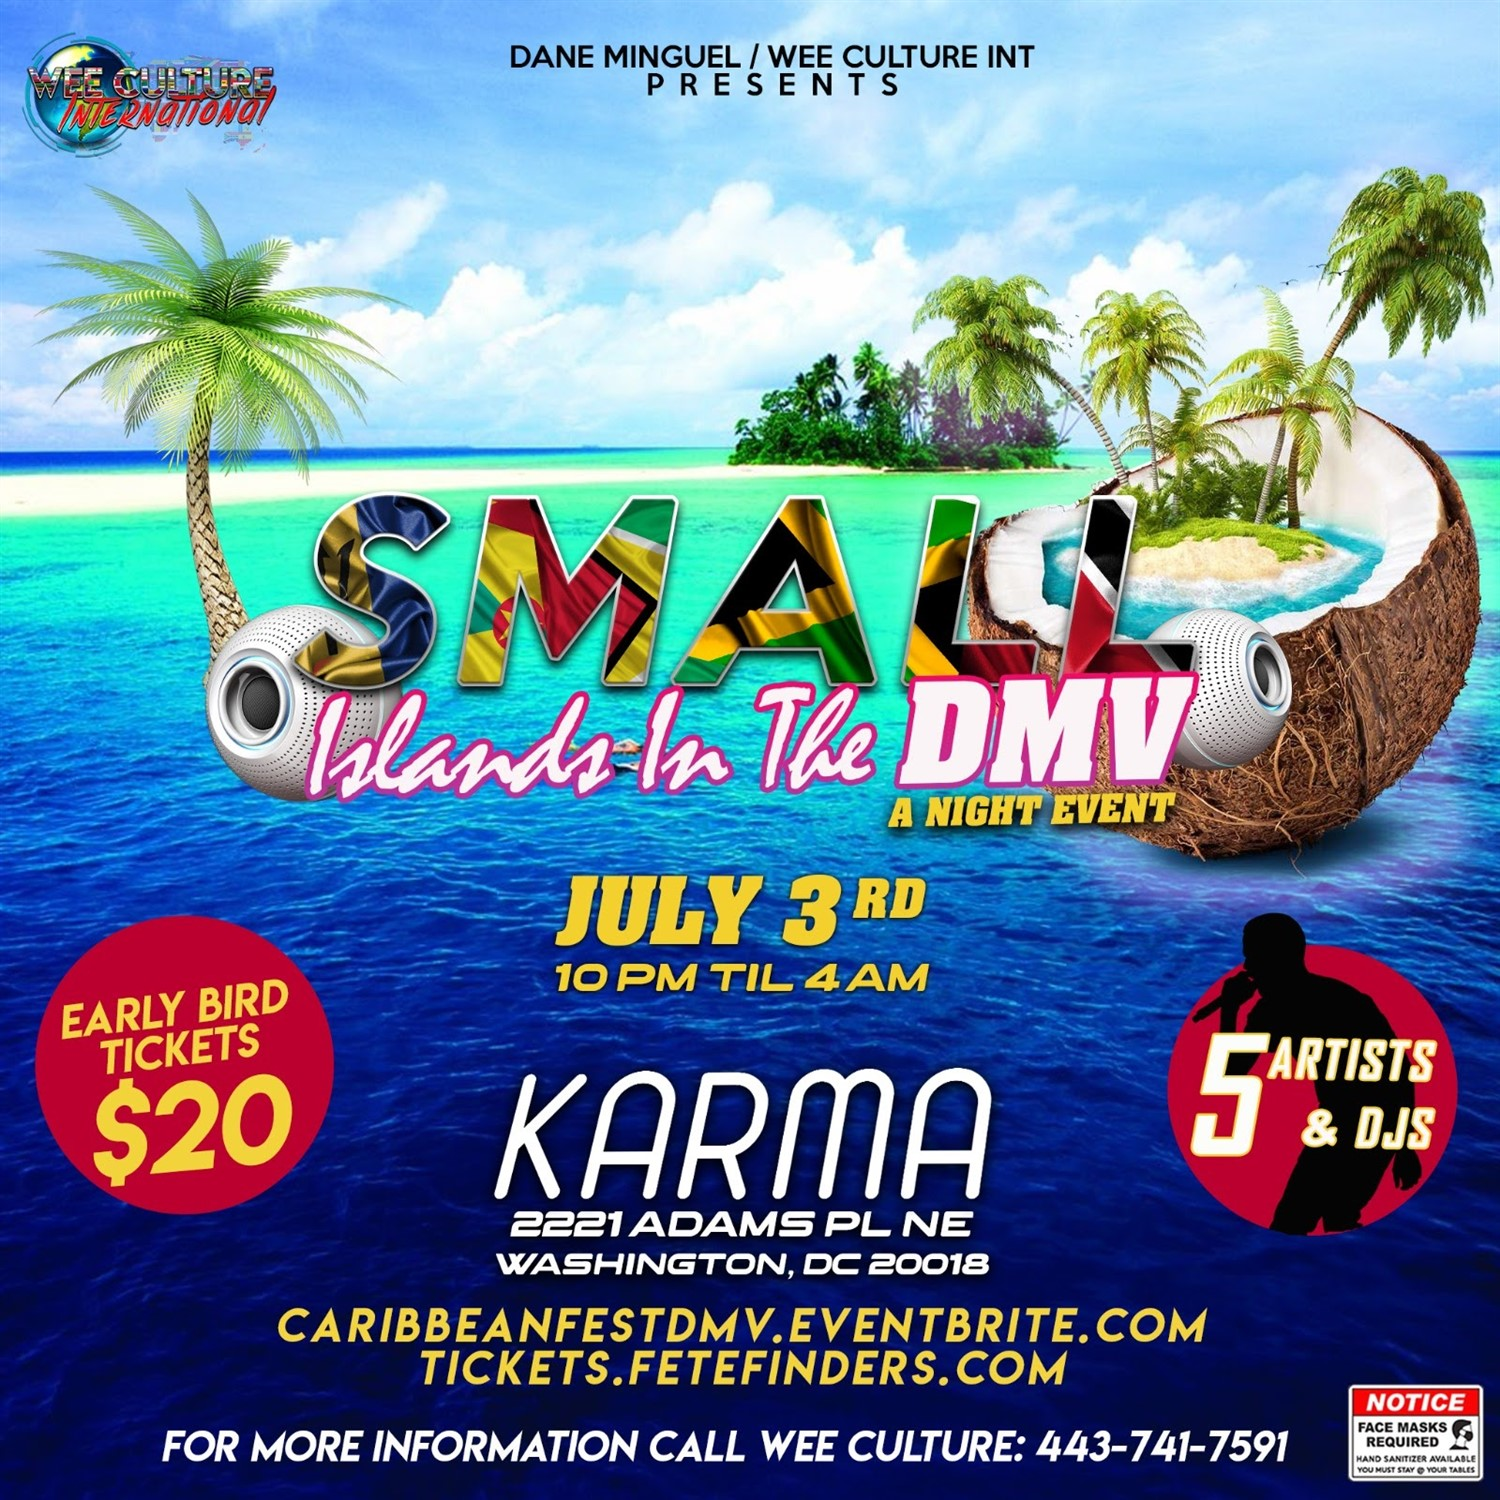 Small Islands in the DMV A Night Event on Jul 03, 22:00@Karma - Buy tickets and Get information on www.fetefinders.com tickets.fetefinders.com